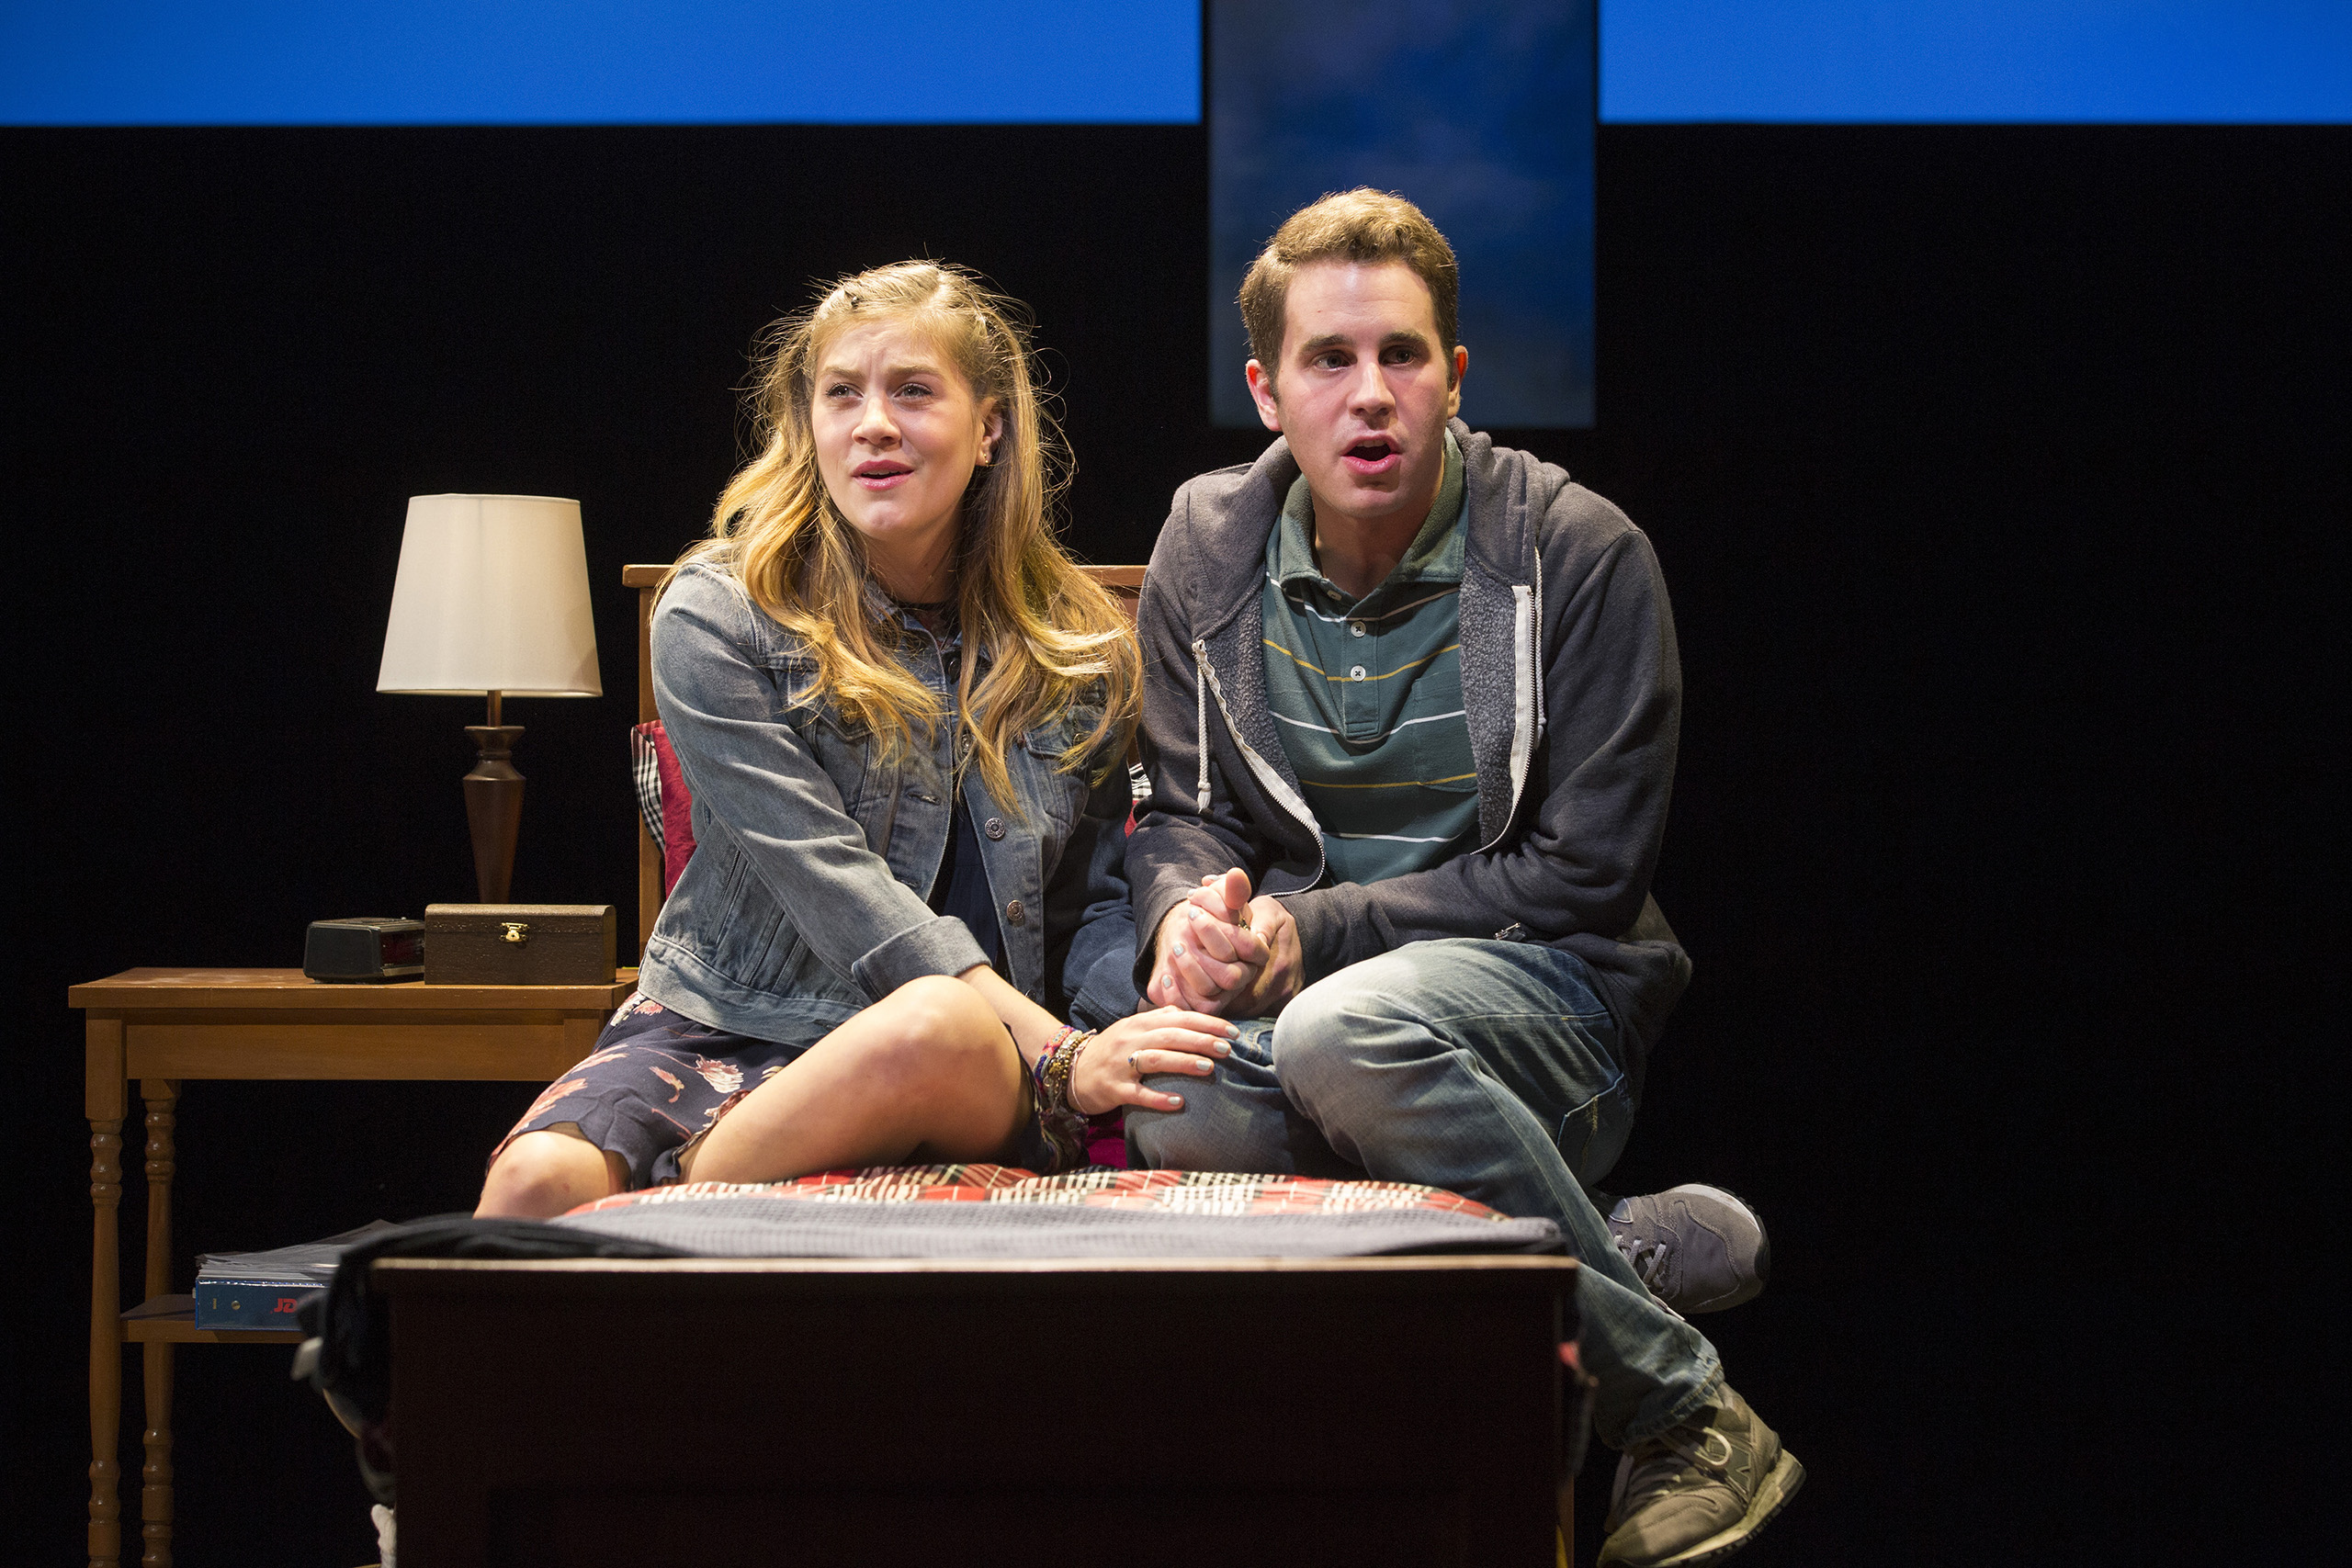 -- PHOTO MOVED IN ADVANCE AND NOT FOR USE - ONLINE OR IN PRINT - BEFORE NOV. 13, 2016. -- FILE -- Laura Dreyfuss, left, and Ben Platt in the musical  Dear Evan Hansen  at the Second Stage Theater in New York, March 25, 2016. Benj Pasek, along with songwriting partner Justin Paul, have been churning out hit songs since college, and will soon see their musical  Dear Evan Hansen  head to Broadway and their lyrics hit the screen in the movie  La La Land.  (Sara Krulwich/The New York Times)